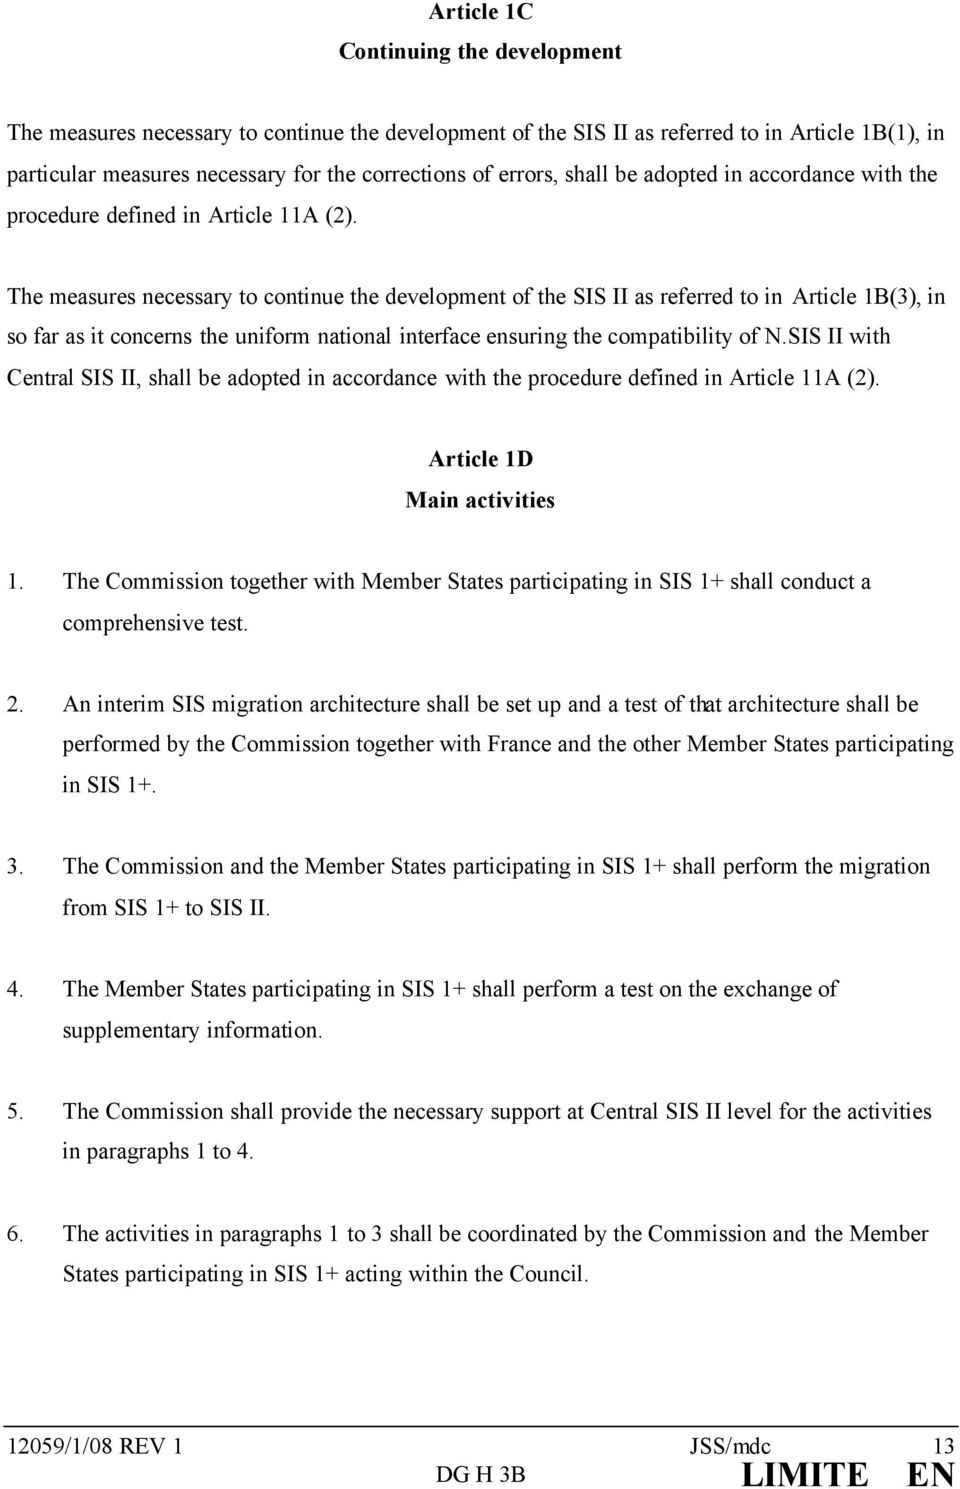 The measures necessary to continue the development of the SIS II as referred to in Article 1B(3), in so far as it concerns the uniform national interface ensuring the compatibility of N.